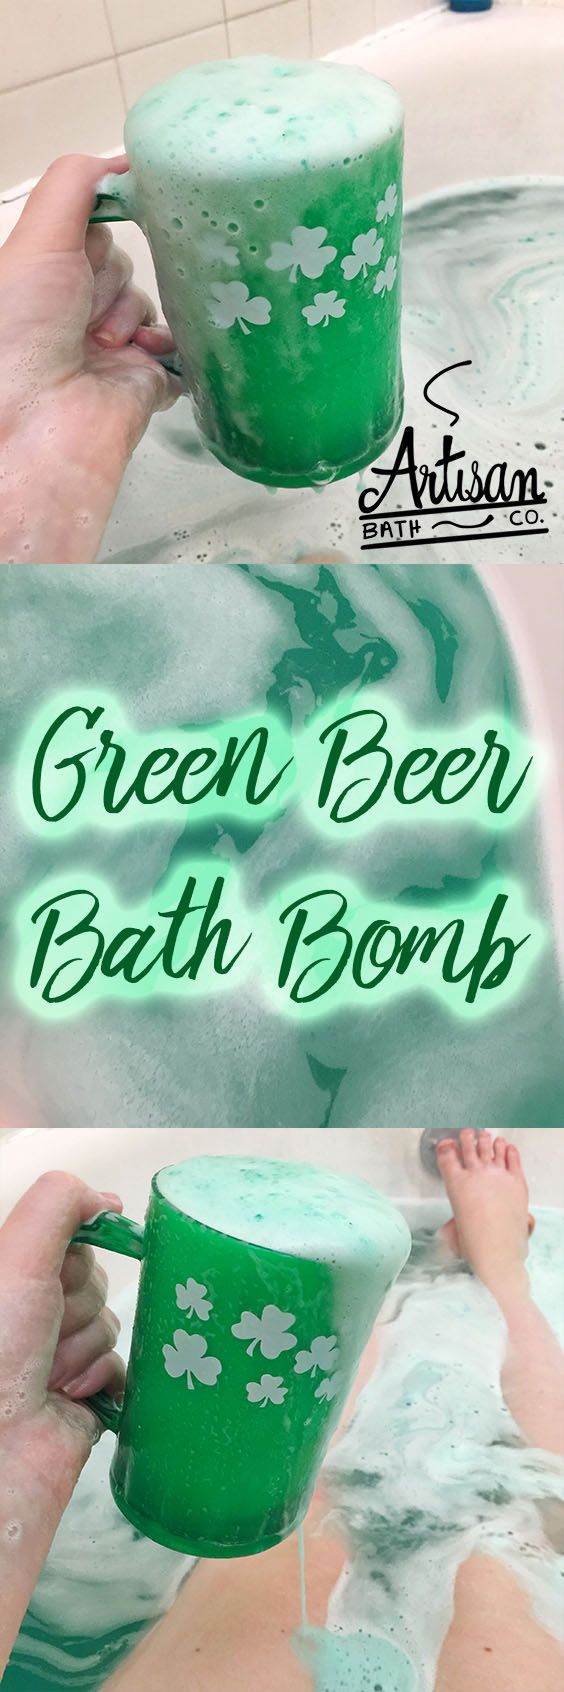 10 oz Green Beer Bath Bomb available in 3 scents: beer, cardamom mocha, and fresh mint. St Patrick's Day, st patricks day bath bomb, bath fizzy, holiday, theme, shamrock, artisan bath co, unique gift, man gift, festive, st. pattys, lucky, leprechaun, three leaf clover, cup, mug,